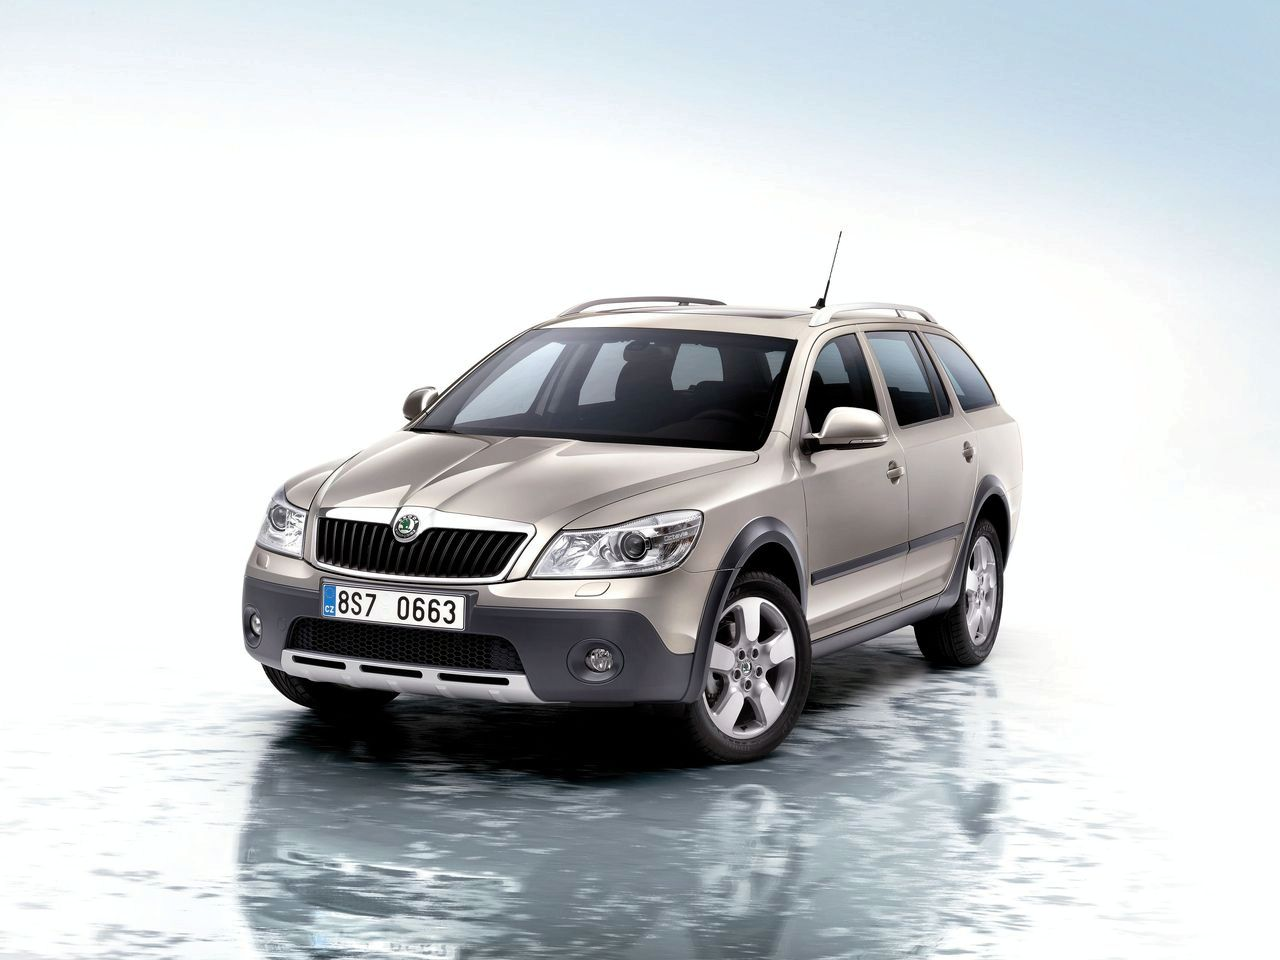 2011 skoda octavia price photos specifications reviews. Black Bedroom Furniture Sets. Home Design Ideas